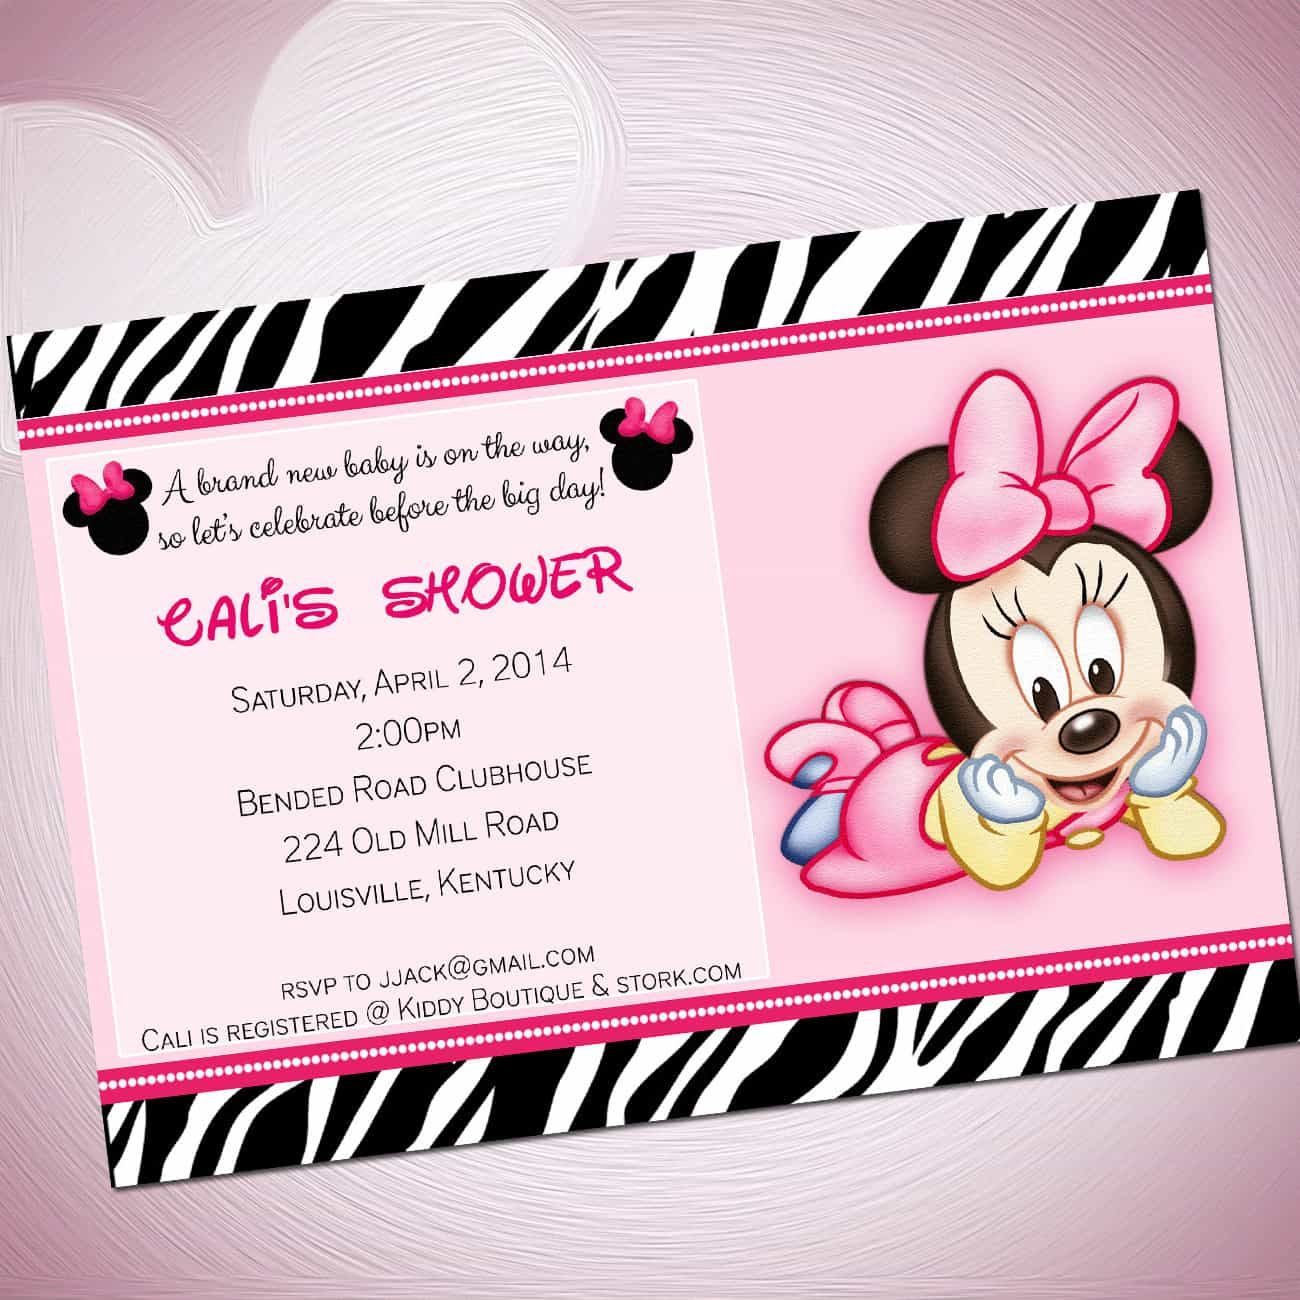 Pinanggunstore On Invitationswww.egreeting-Ecards | Baby - Free Printable Zebra Baby Shower Invitations